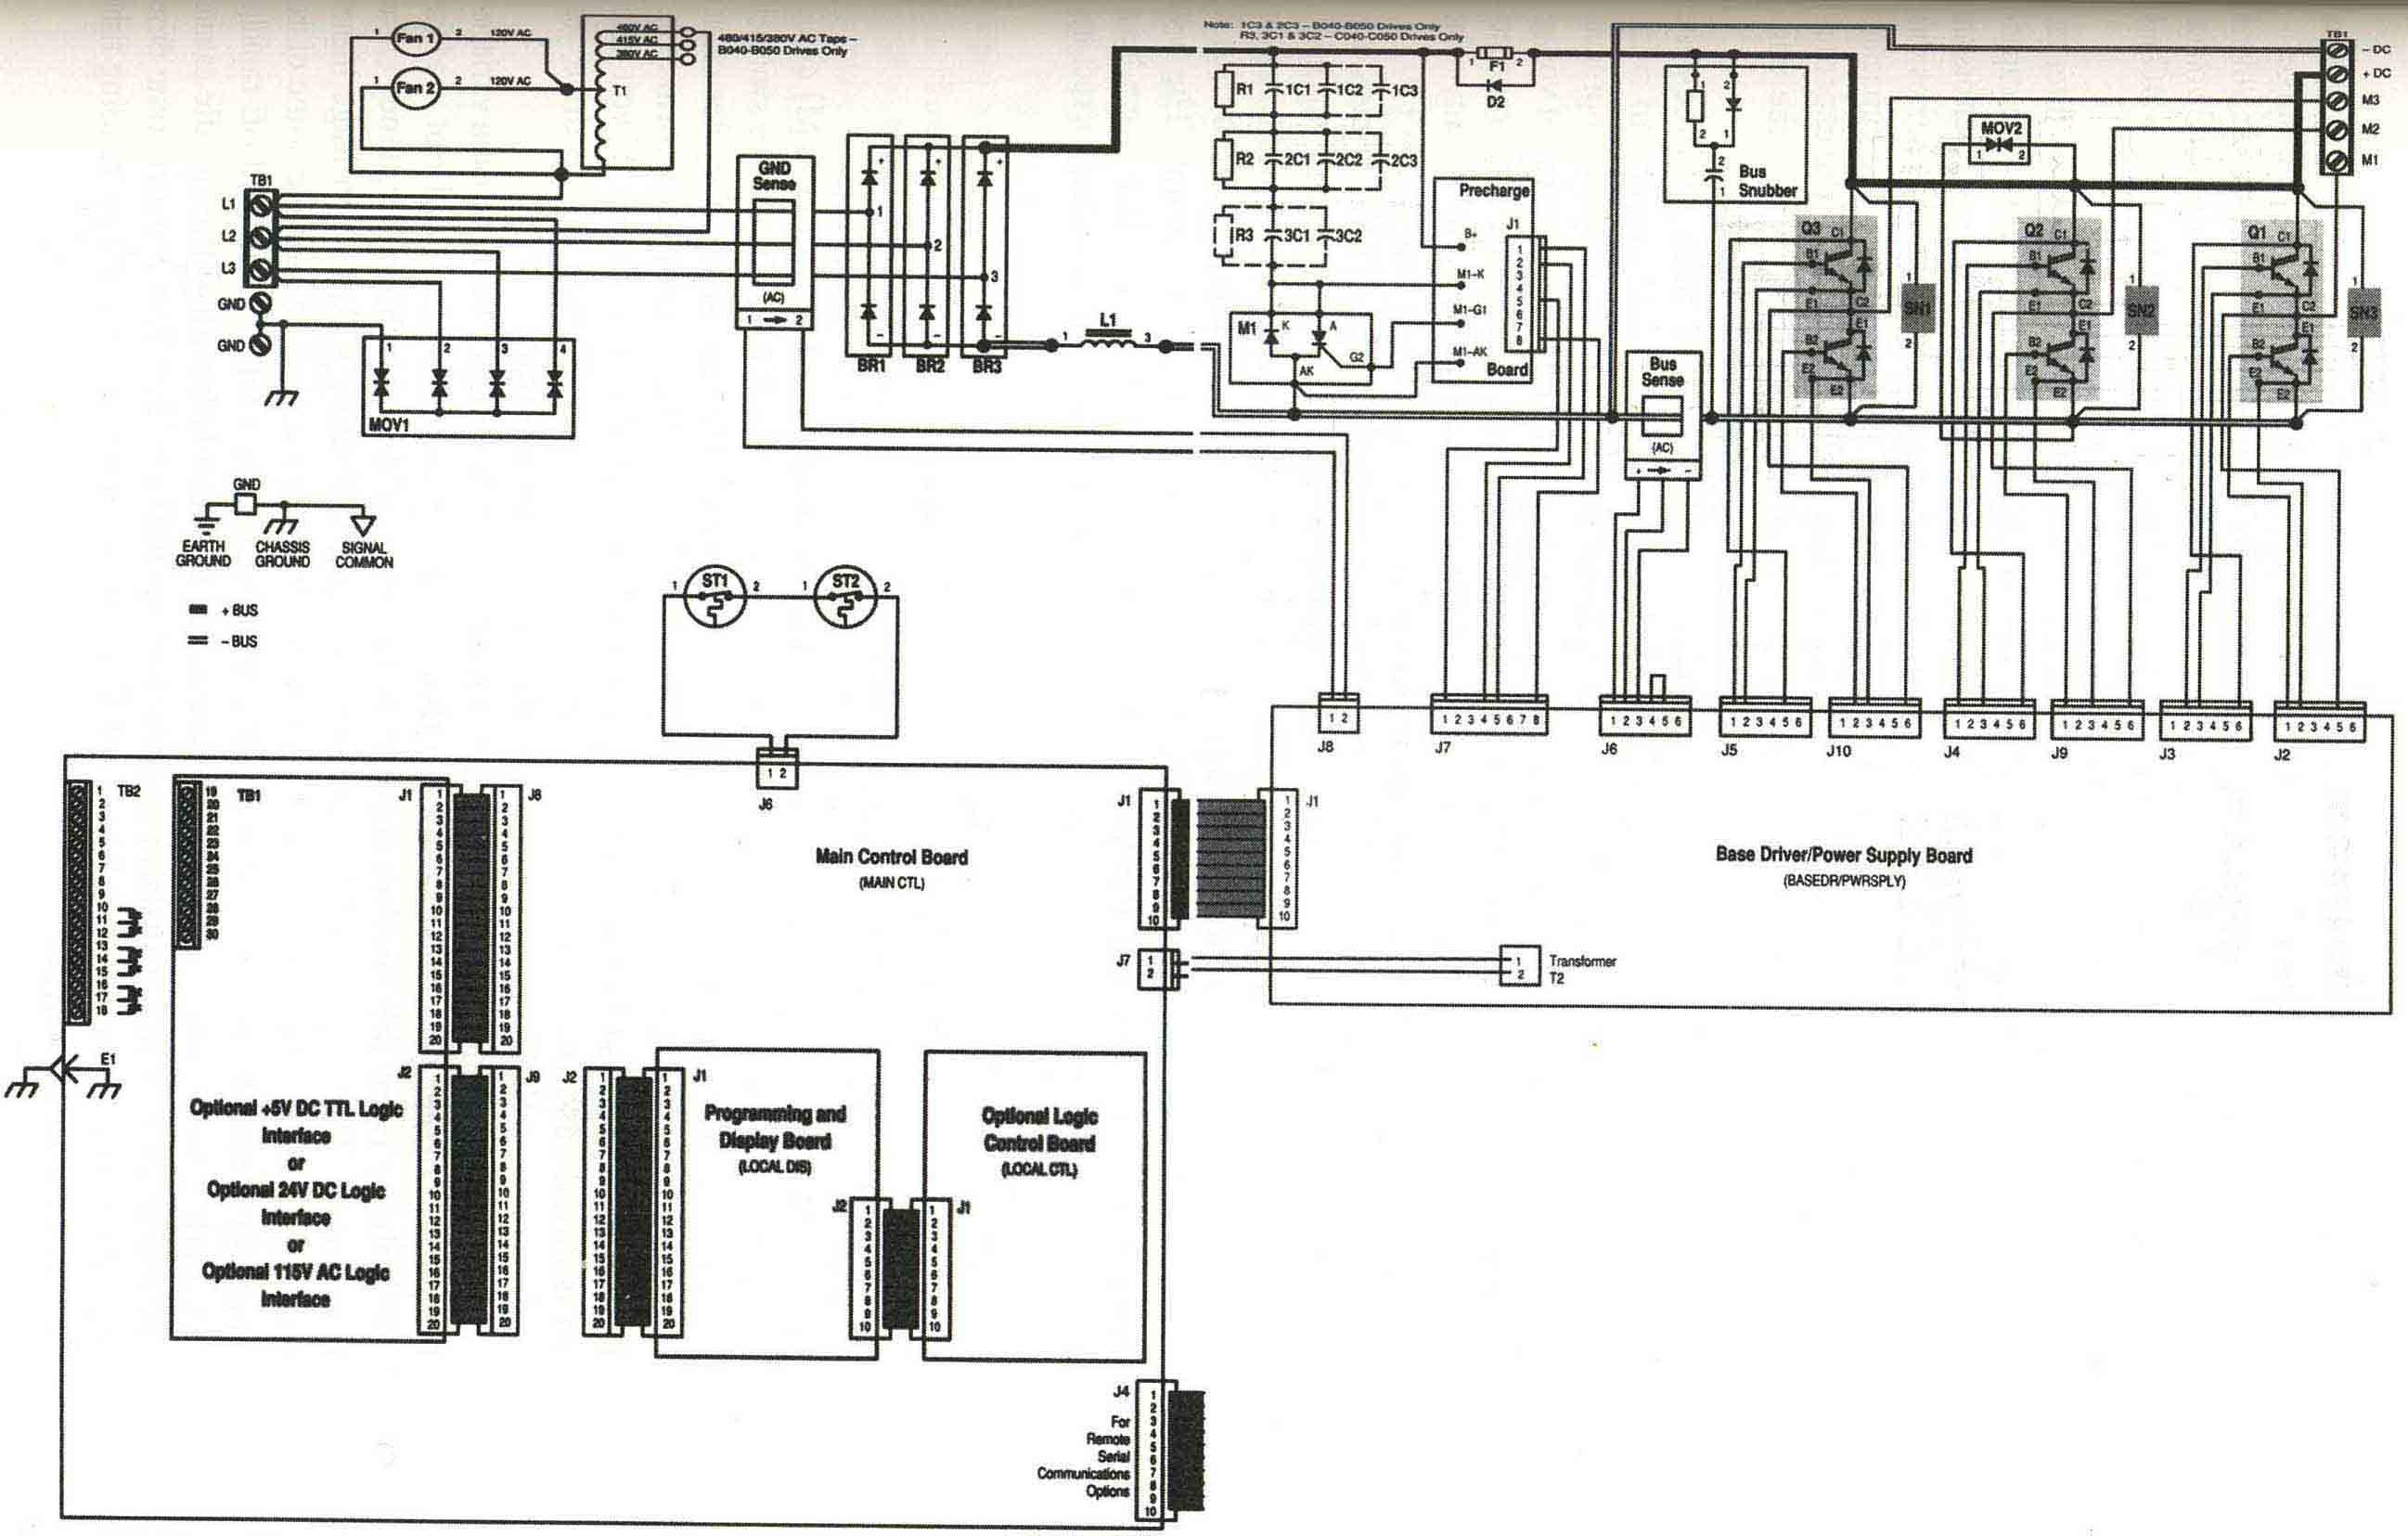 WRG-5951] Variable Frequency Drive Wiring Diagram on